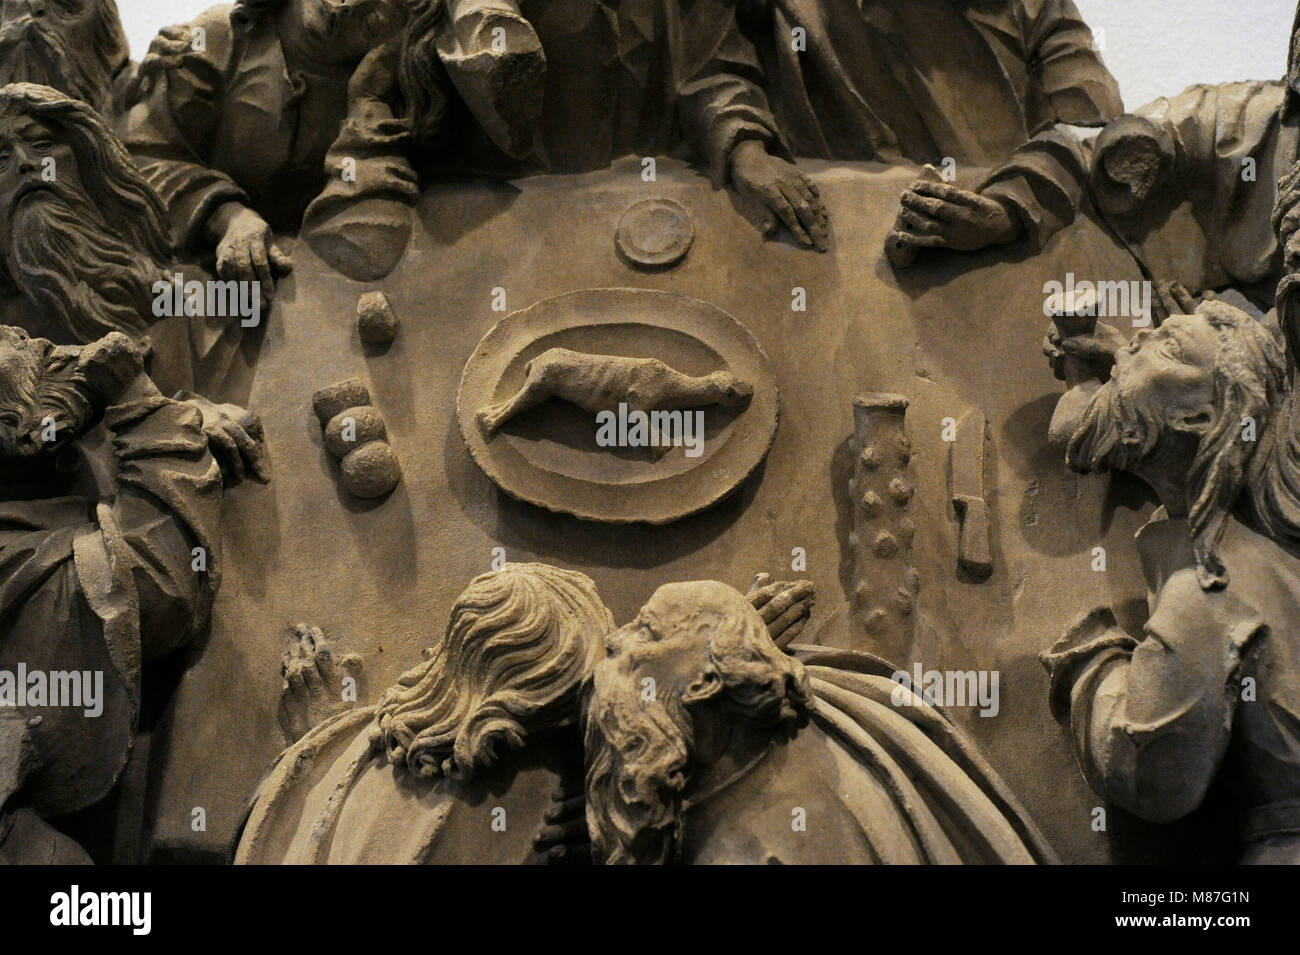 The Last Supper from the sacrament house of Cologne Cathedral, Germany. Cologne, c. 1510. Sculptural group. detail. - Stock Image